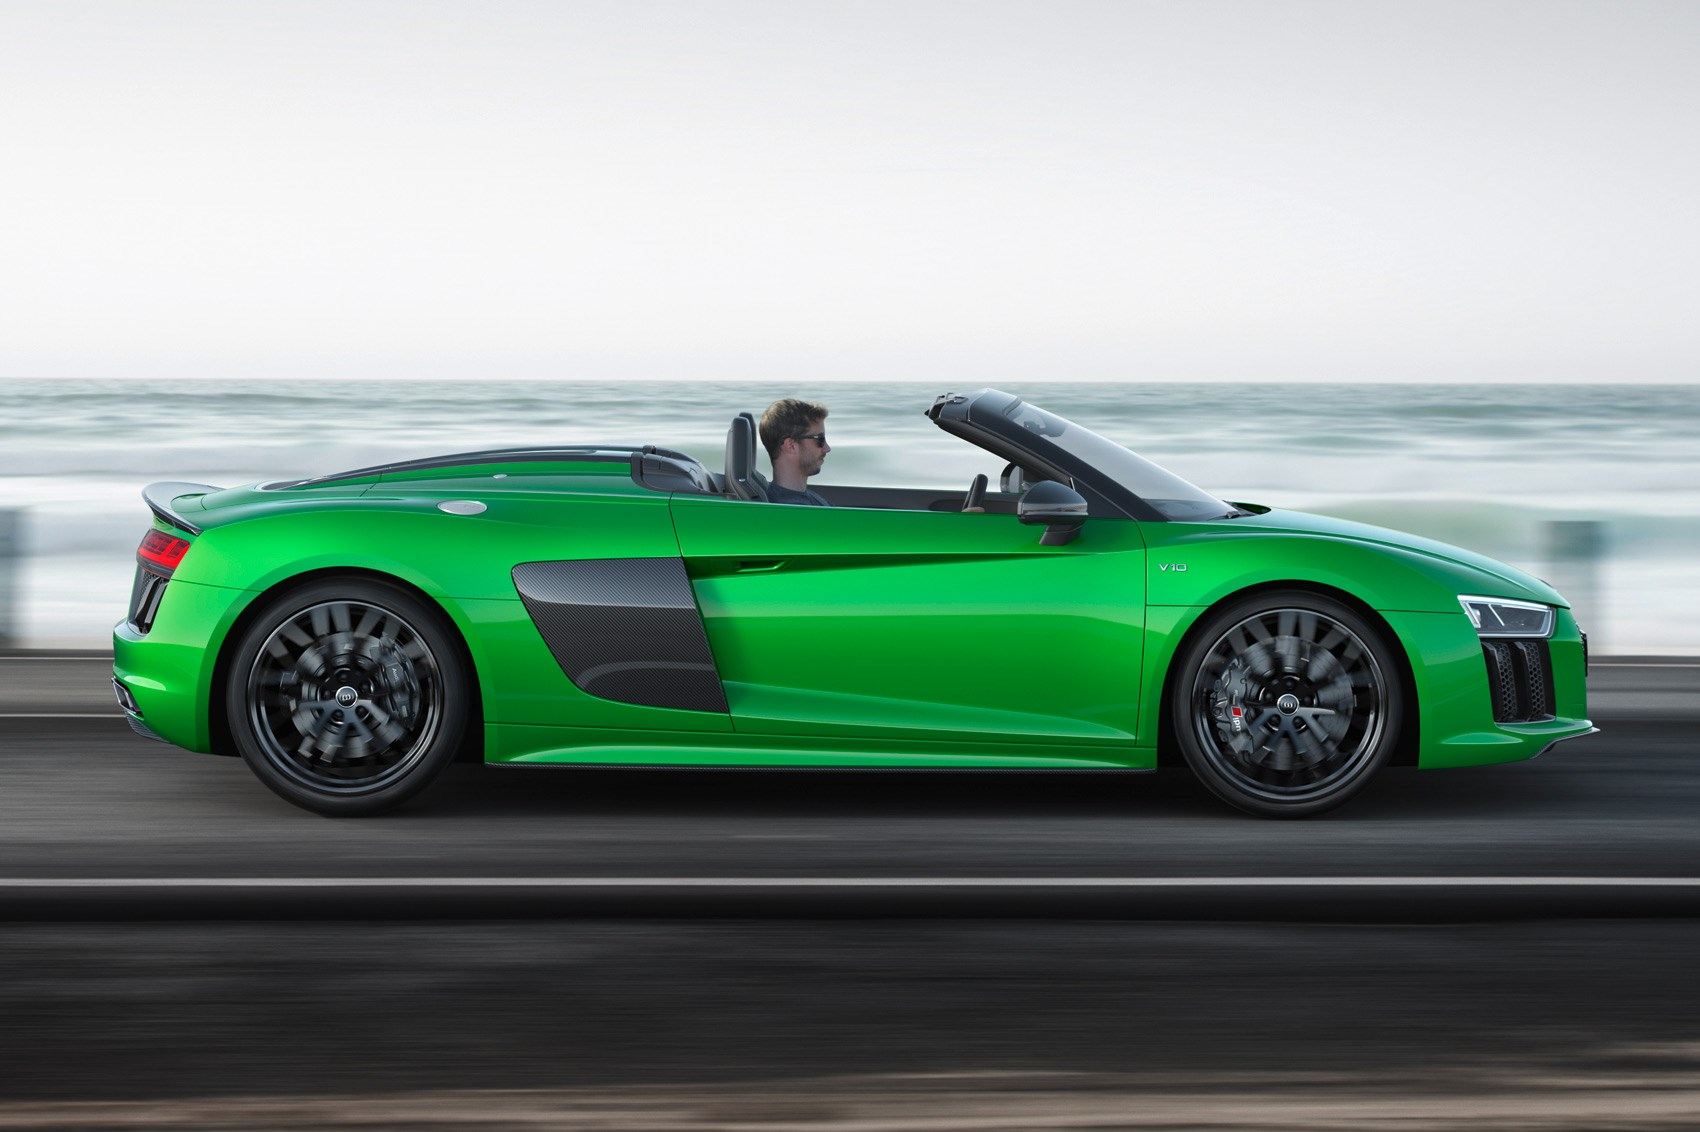 The Hulk Goes Topless: New Audi R8 Spyder V10 Plus